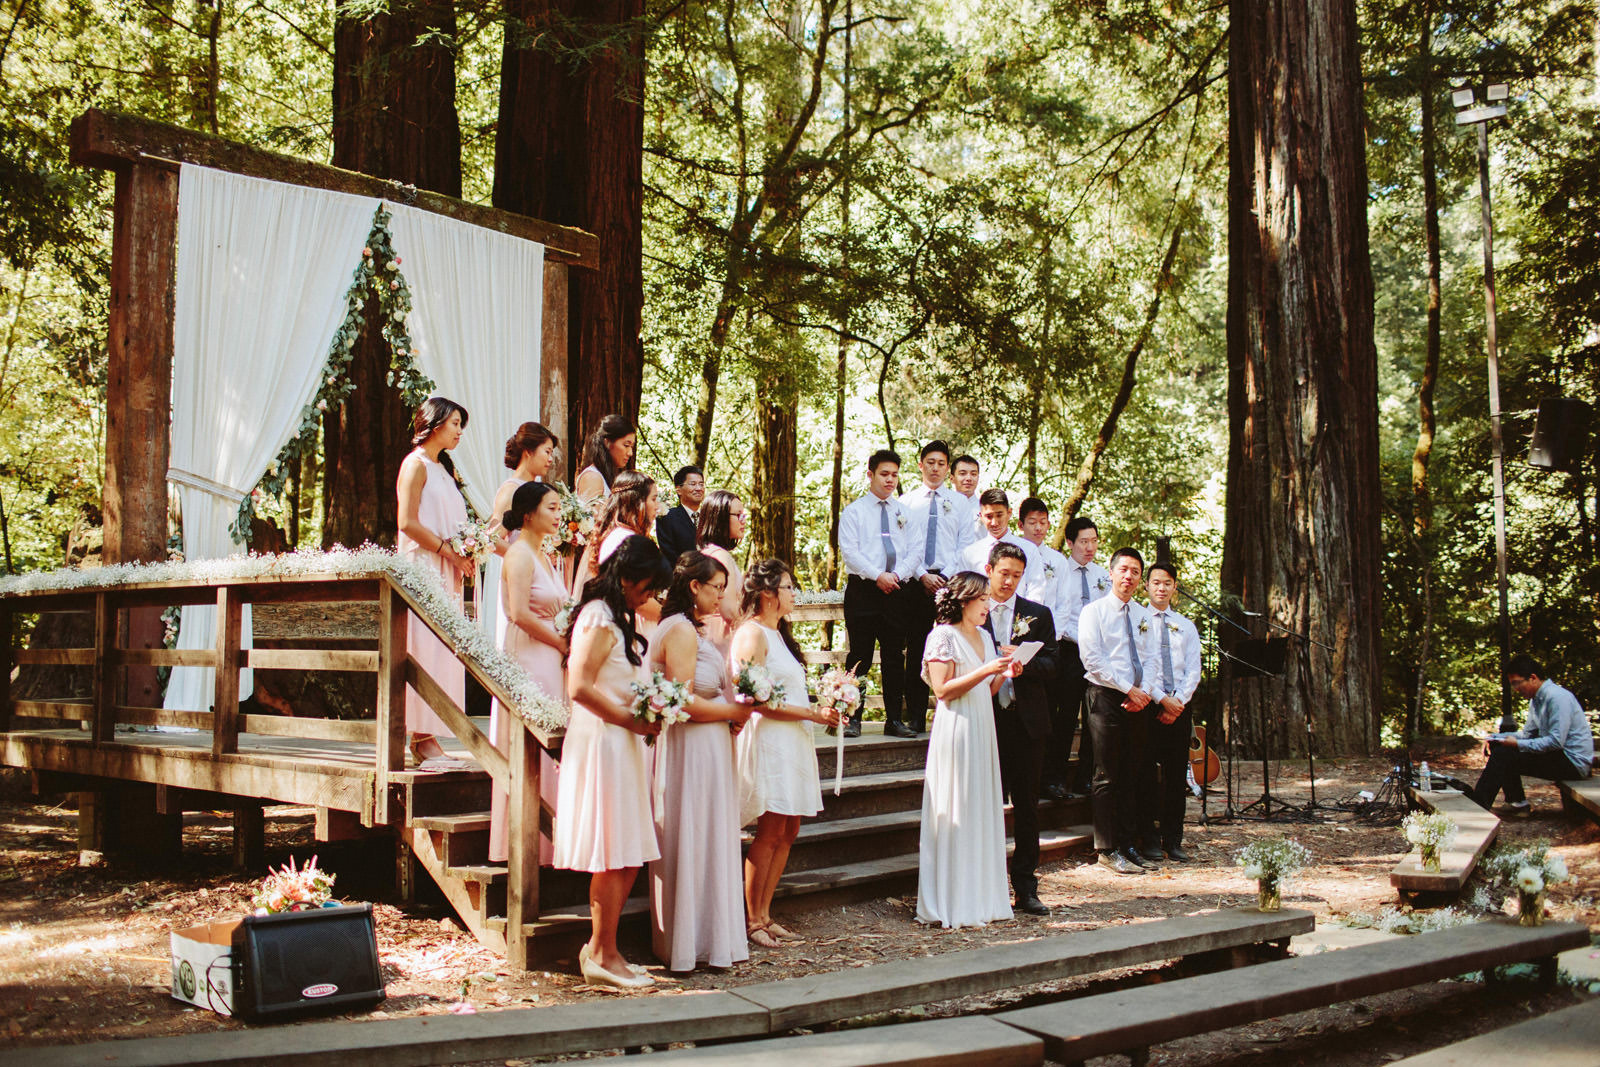 kimclay-blog-026 REDWOOD FOREST WEDDING